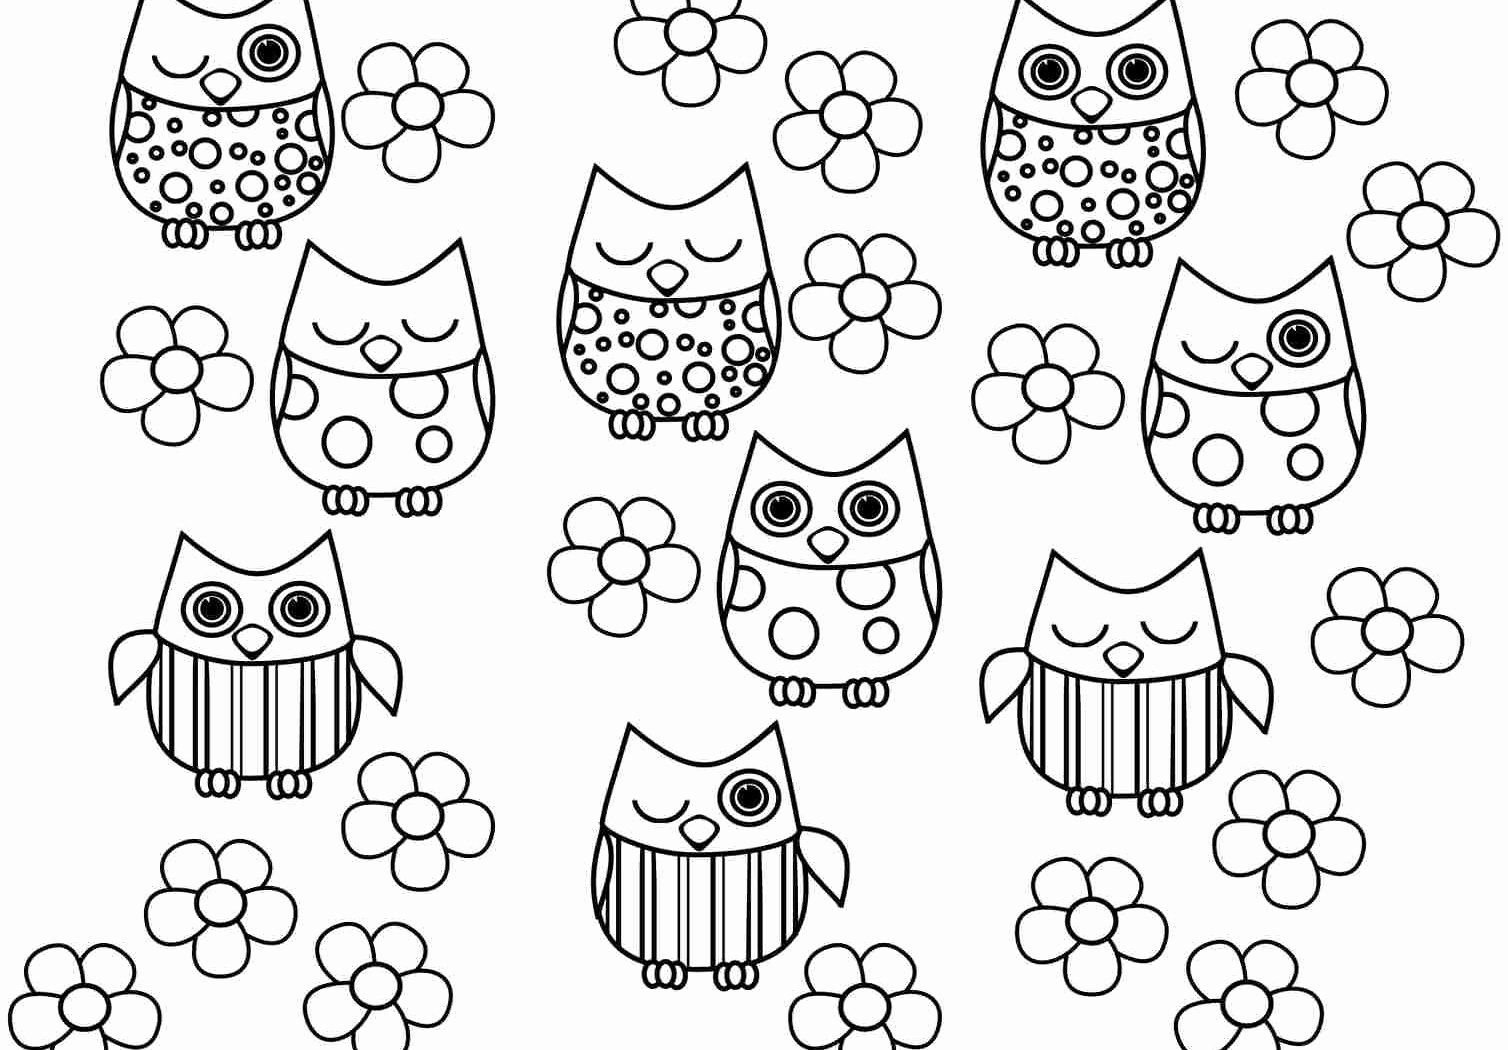 Coloring Pages Animals And Flowers New 25 Popular White Owl Vase Owl Coloring Pages Coloring Pages For Girls Printable Coloring Pages